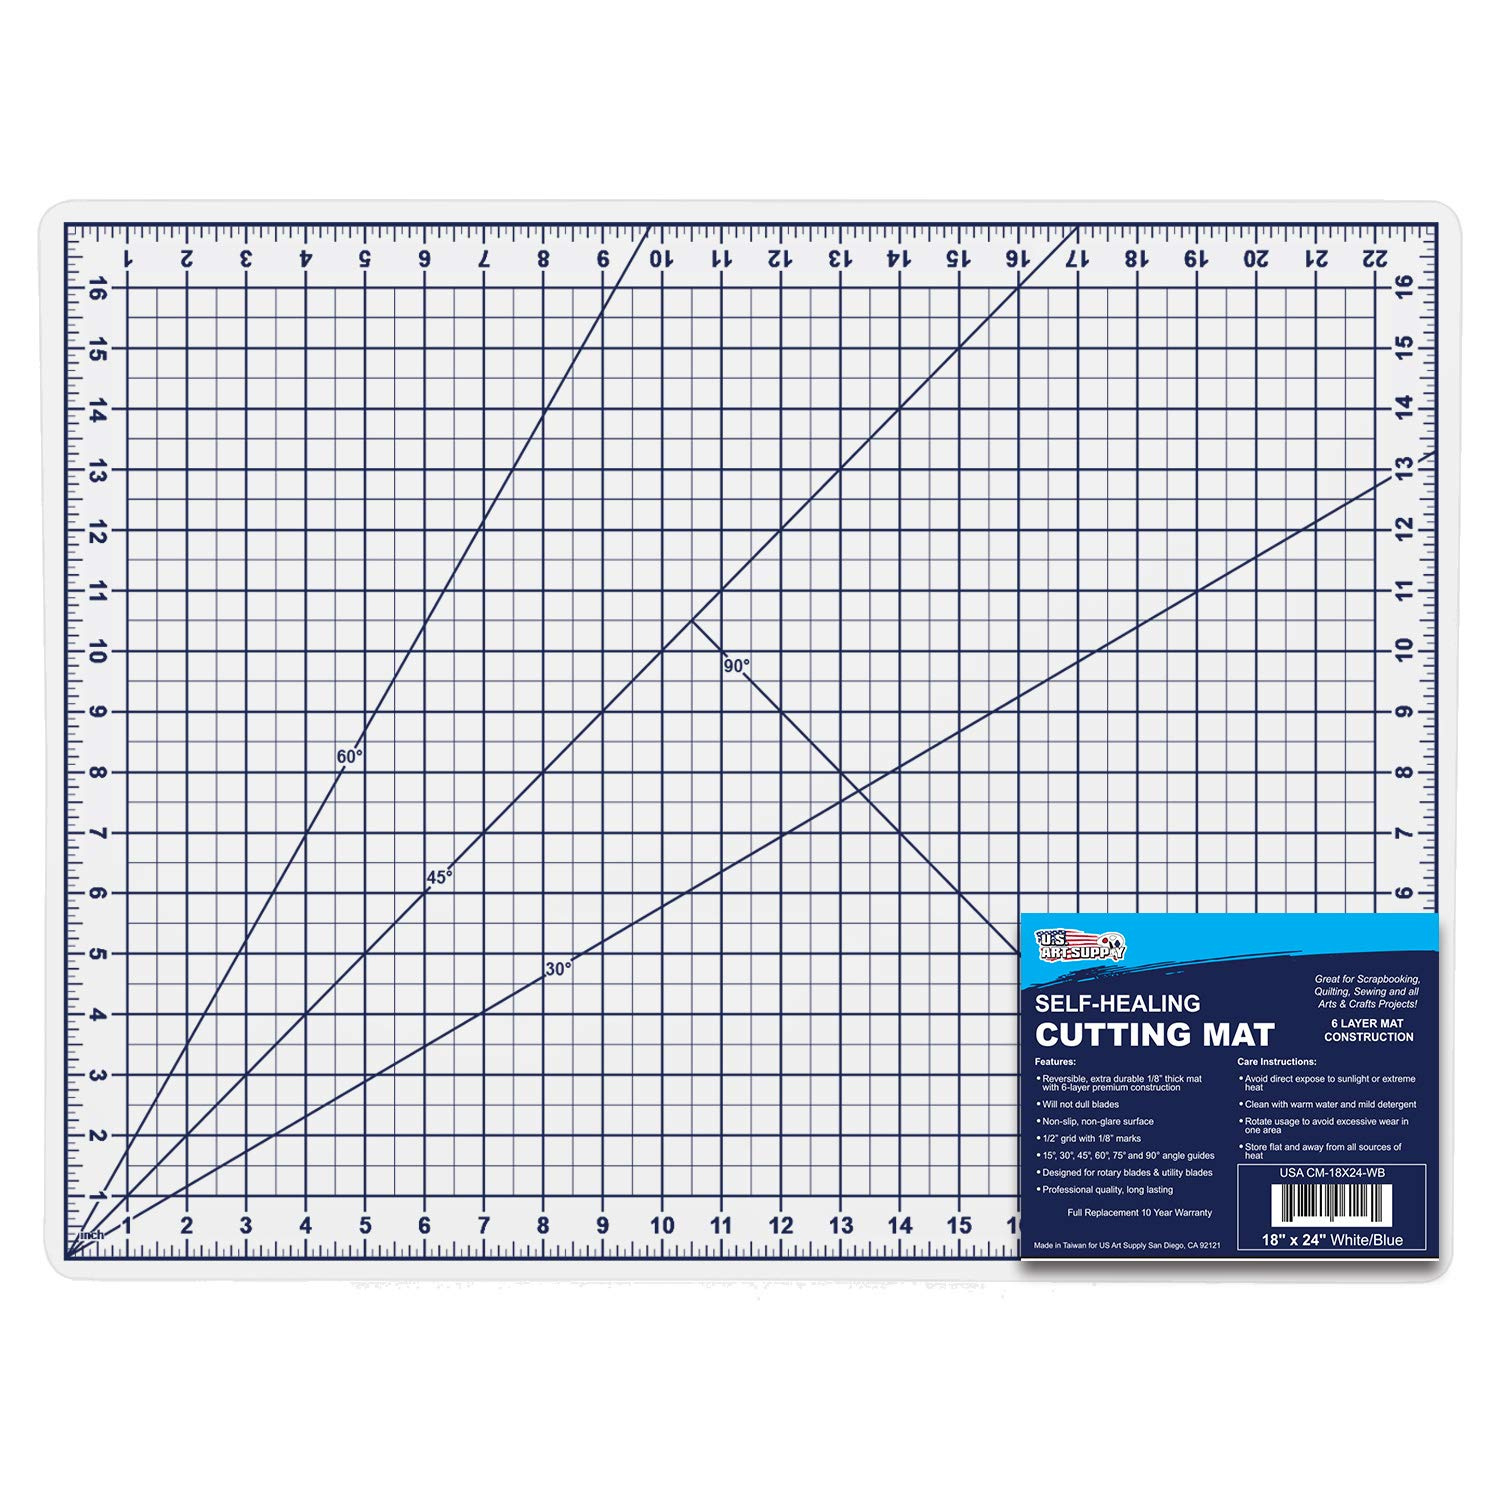 U.S Art Supply 12 x 18 WHITE//BLUE High Contrast Professional Self Healing 6-Layer Double Sided Durable Non-Slip PVC Cutting Mat Great for Scrapbooking Sewing and all Arts /& Crafts Projects Quilting